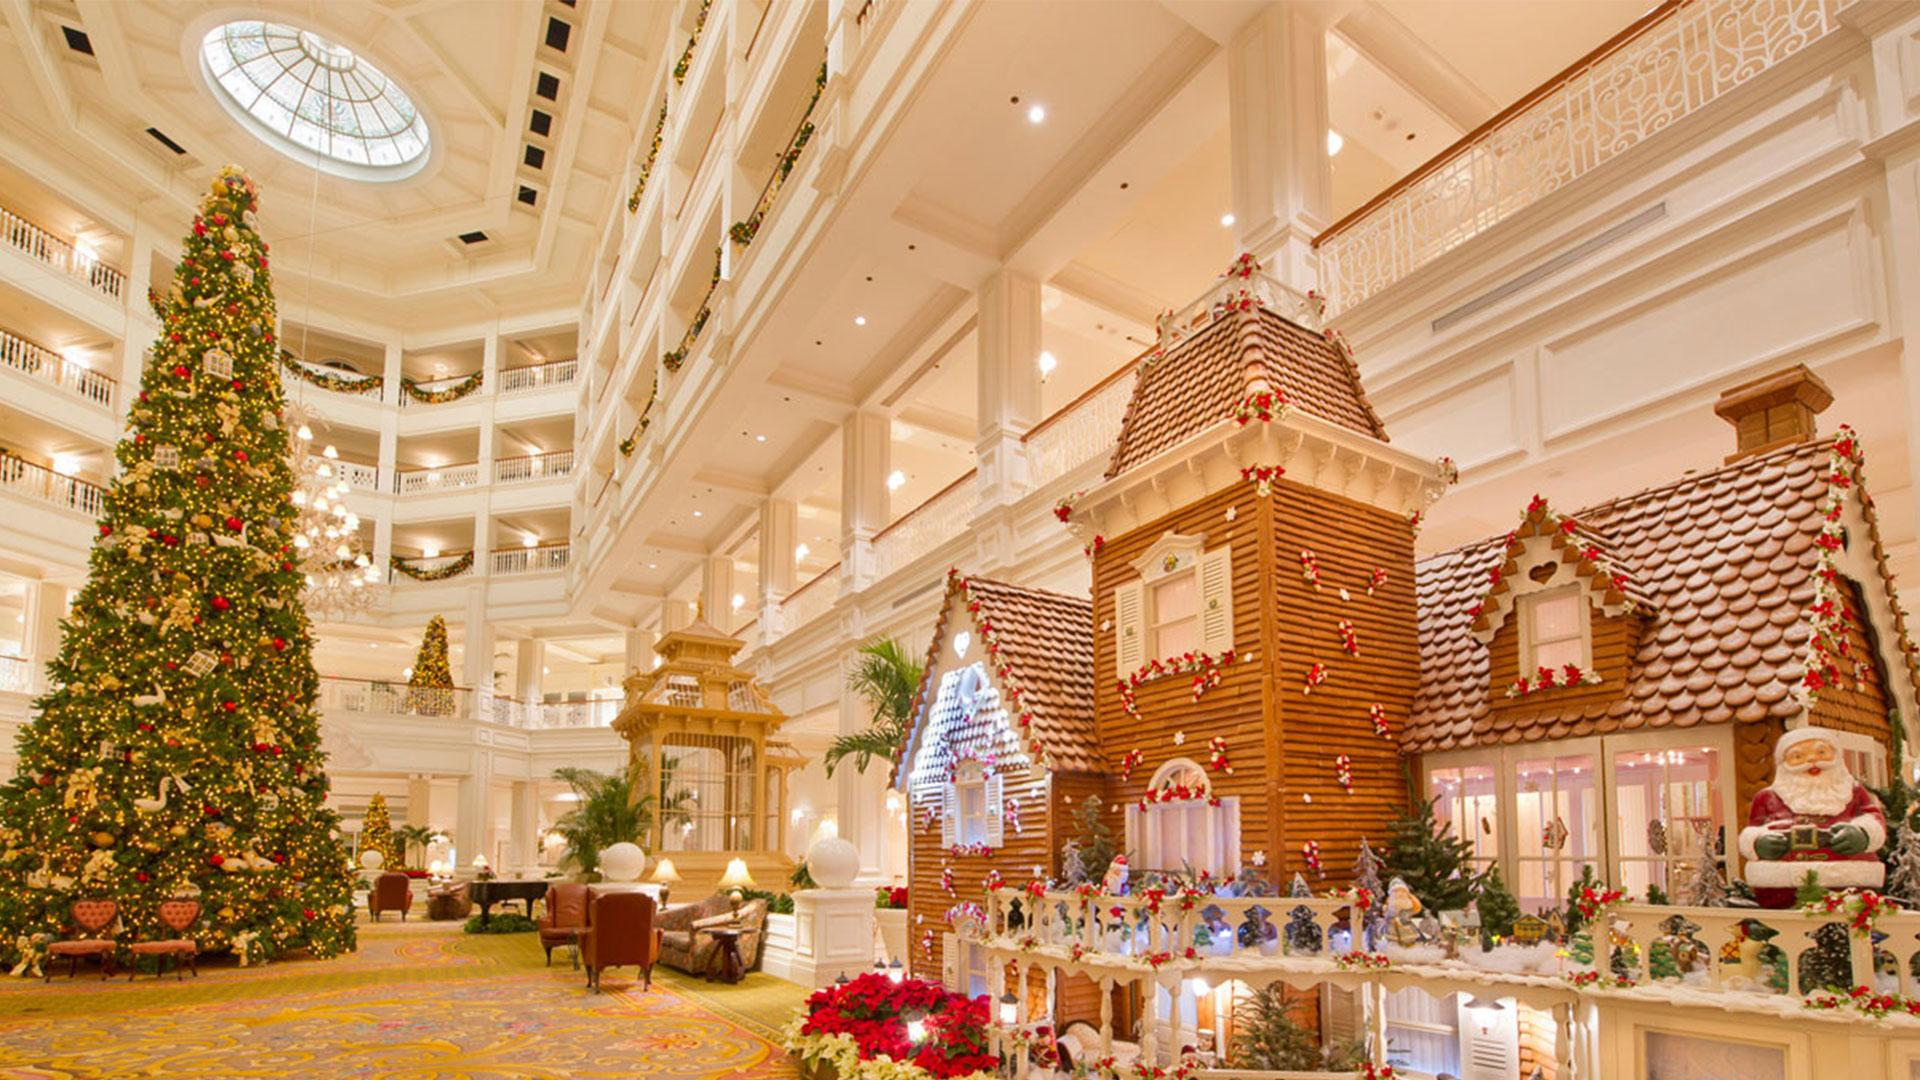 WATCH: These Life-Size Gingerbread Houses at Disney World Are Guaranteed to Make Your Spirits Bright